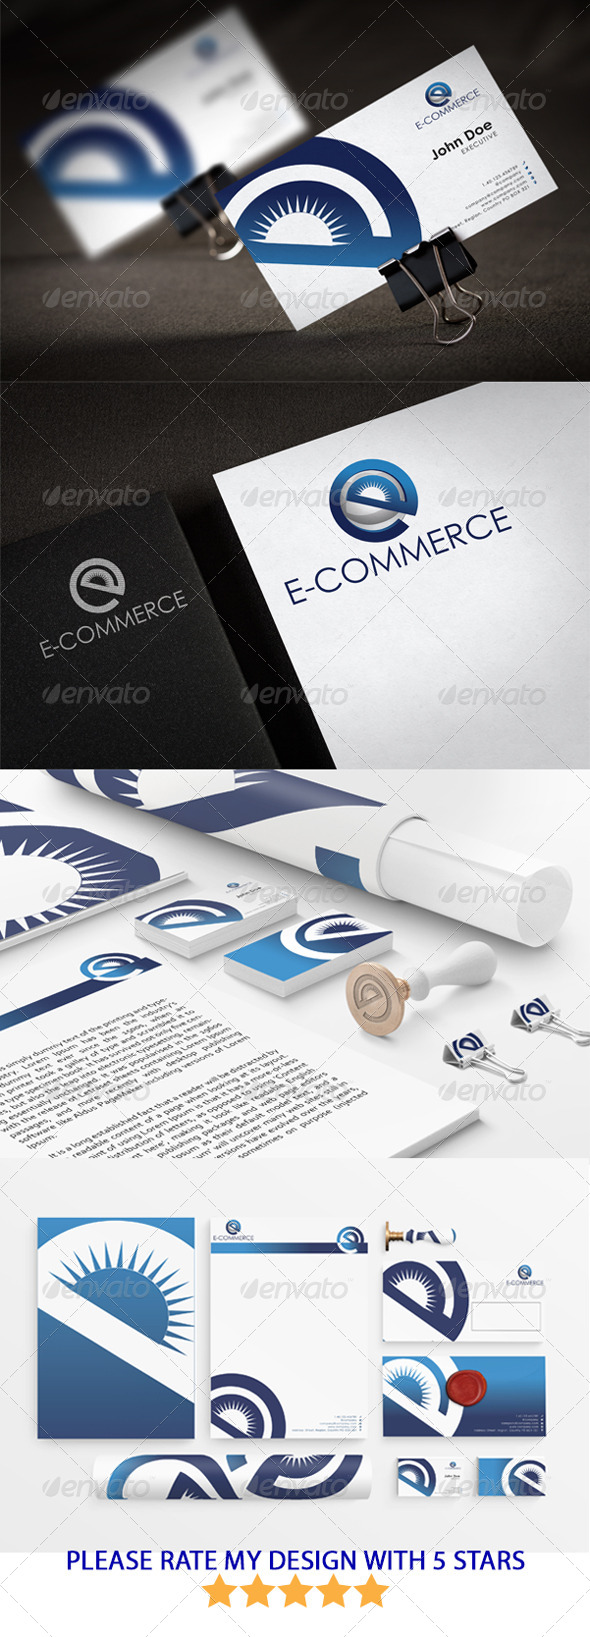 GraphicRiver eCommerce Stationary New Templates Design 5433341